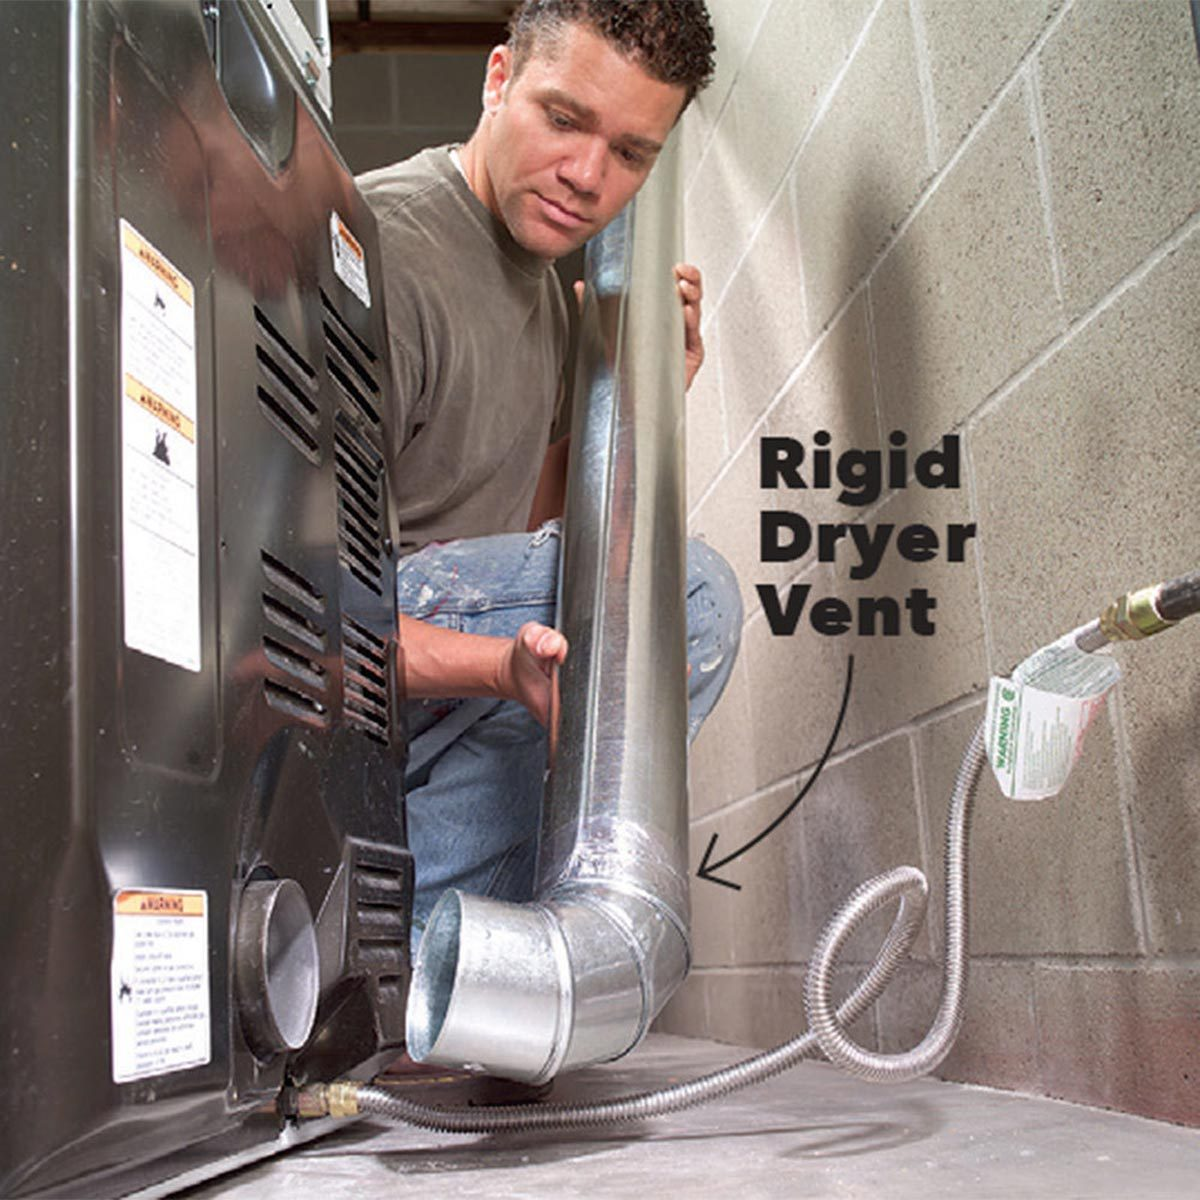 rigid dryer vent